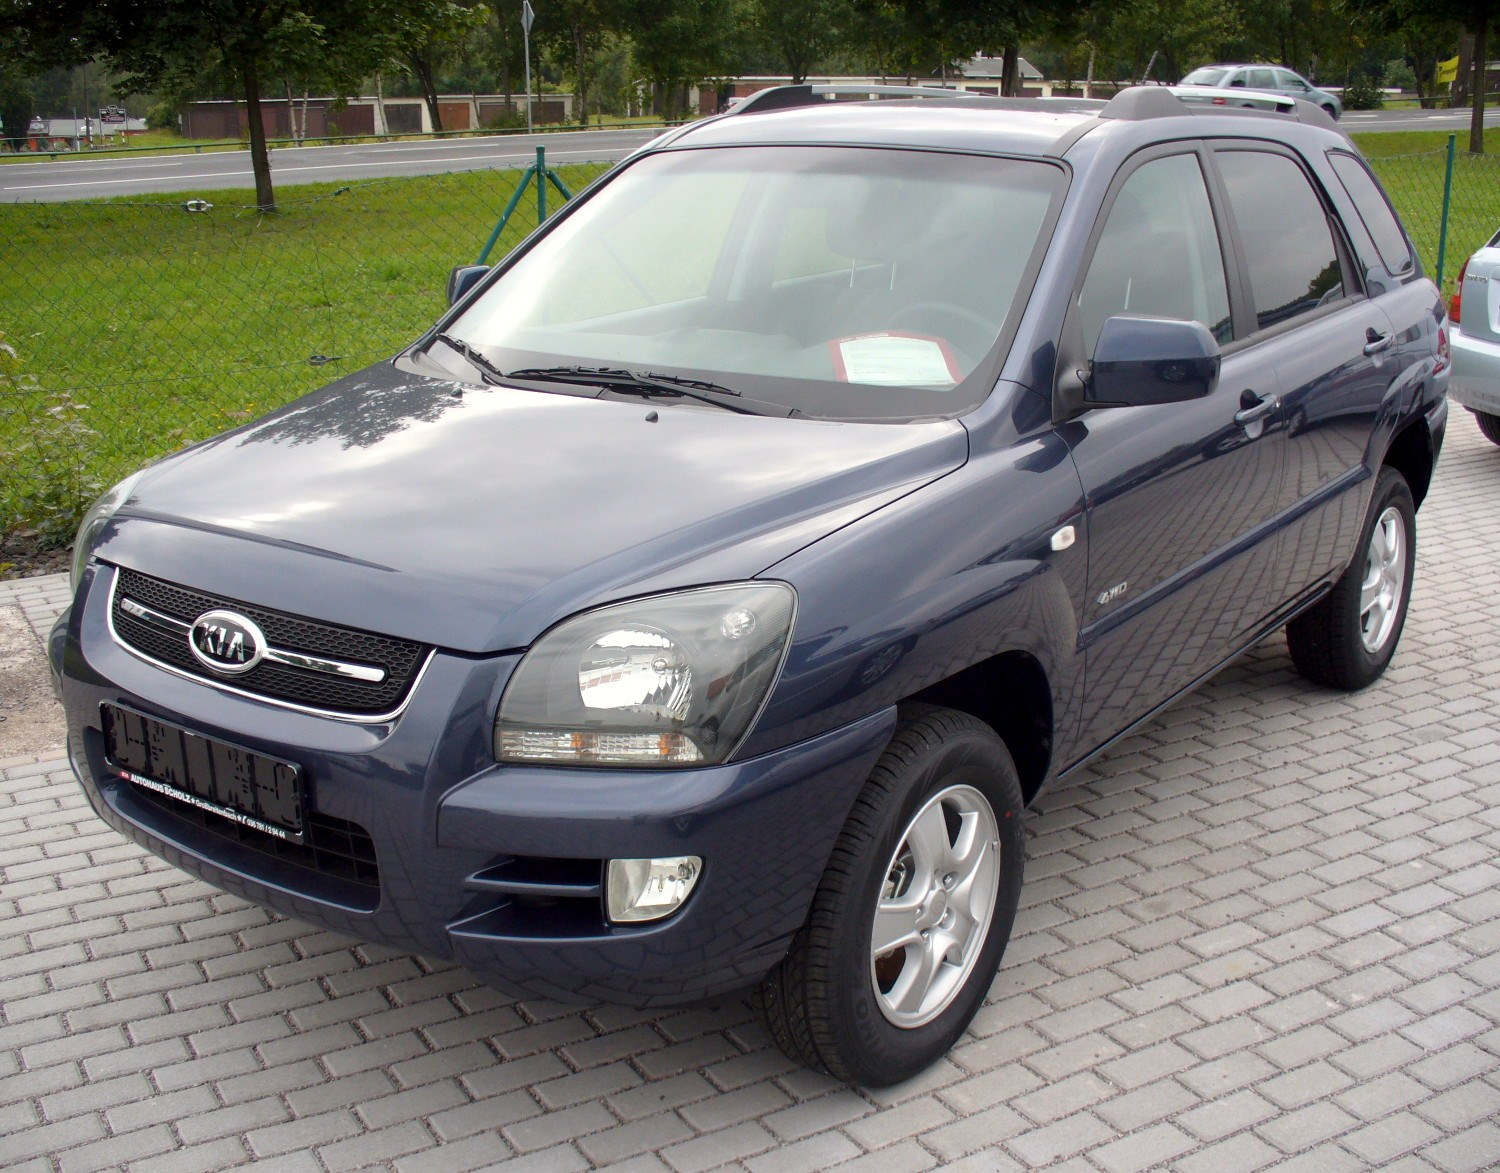 file kia sportage 2 0 crdi 4wd champ top star fjordblau facelift jpg. Black Bedroom Furniture Sets. Home Design Ideas